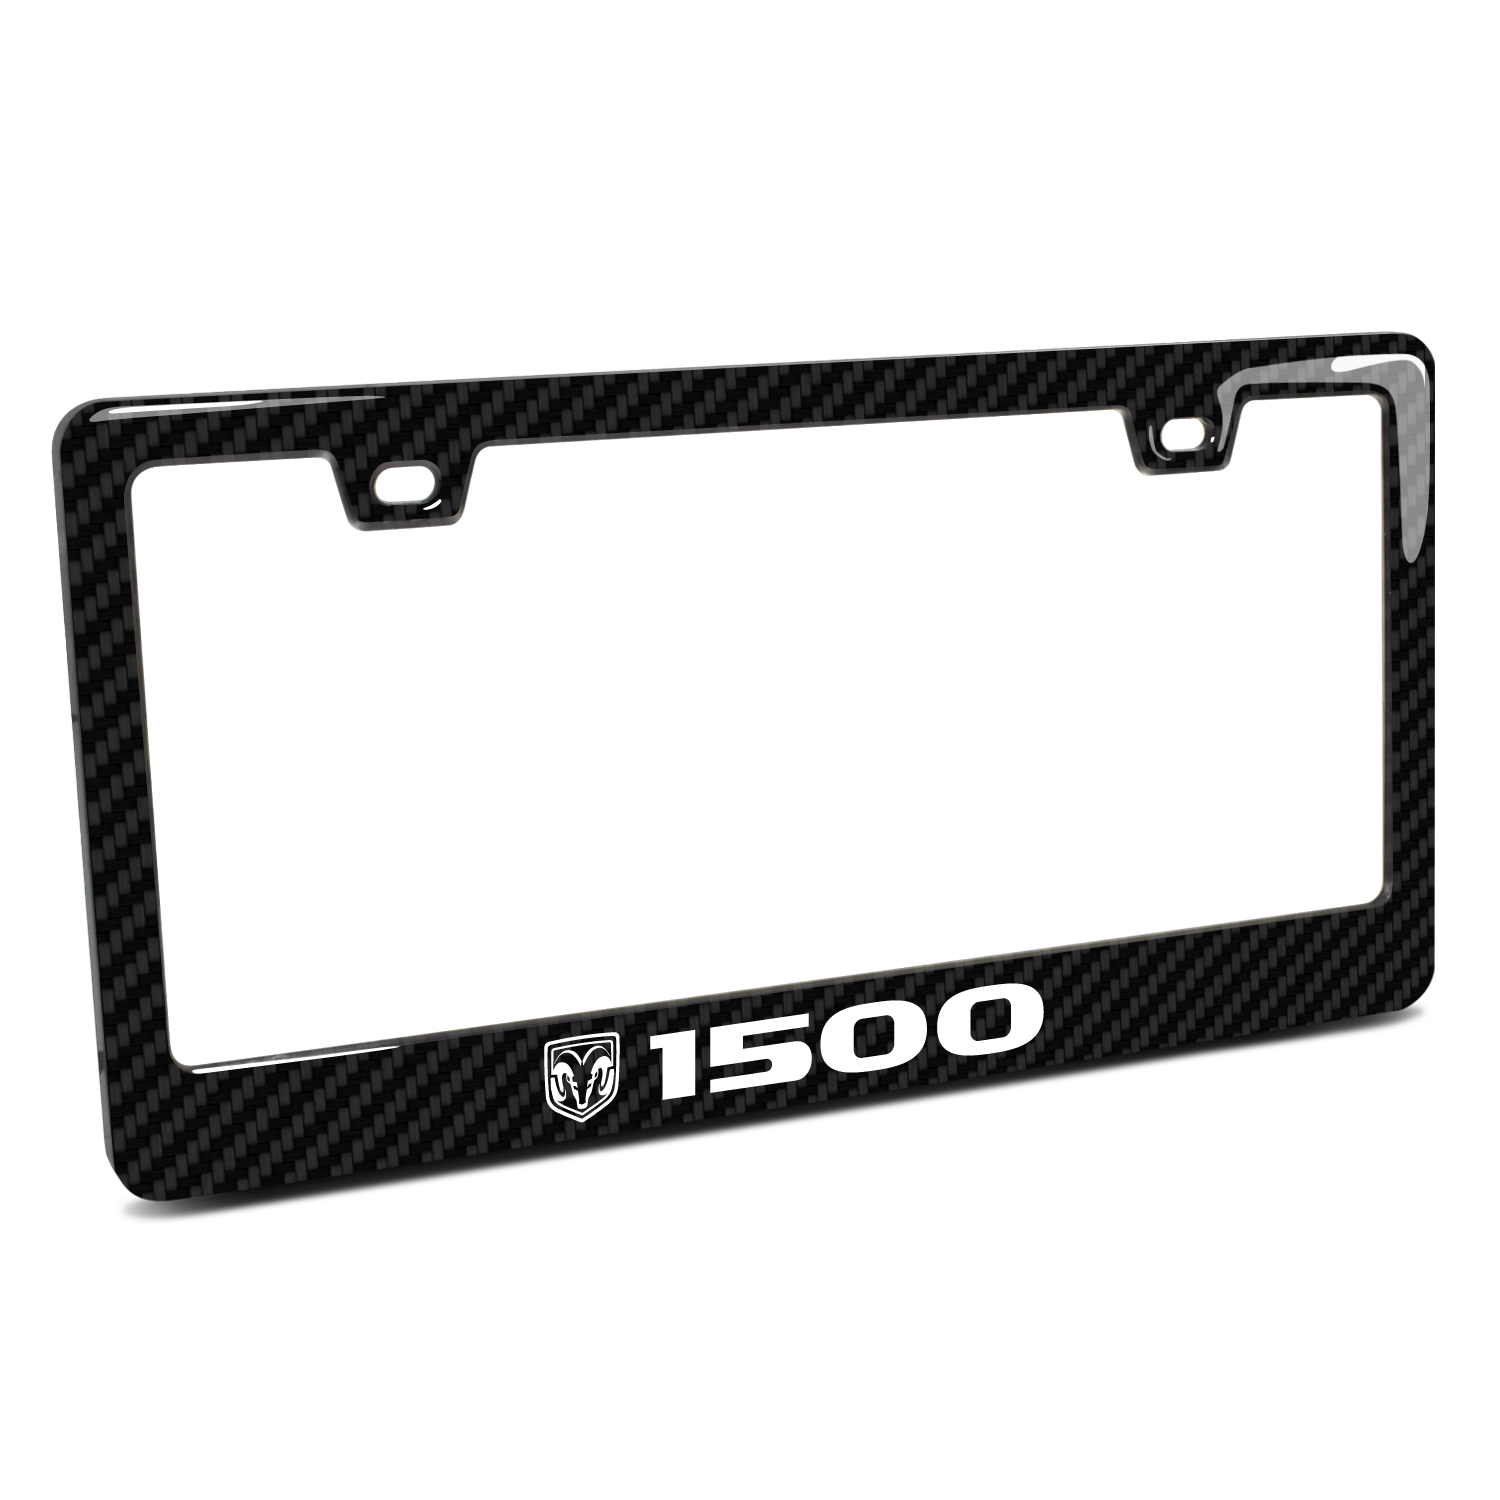 RAM 1500 Logo Black Real 3K Carbon Fiber Finish ABS Plastic License Plate Frame